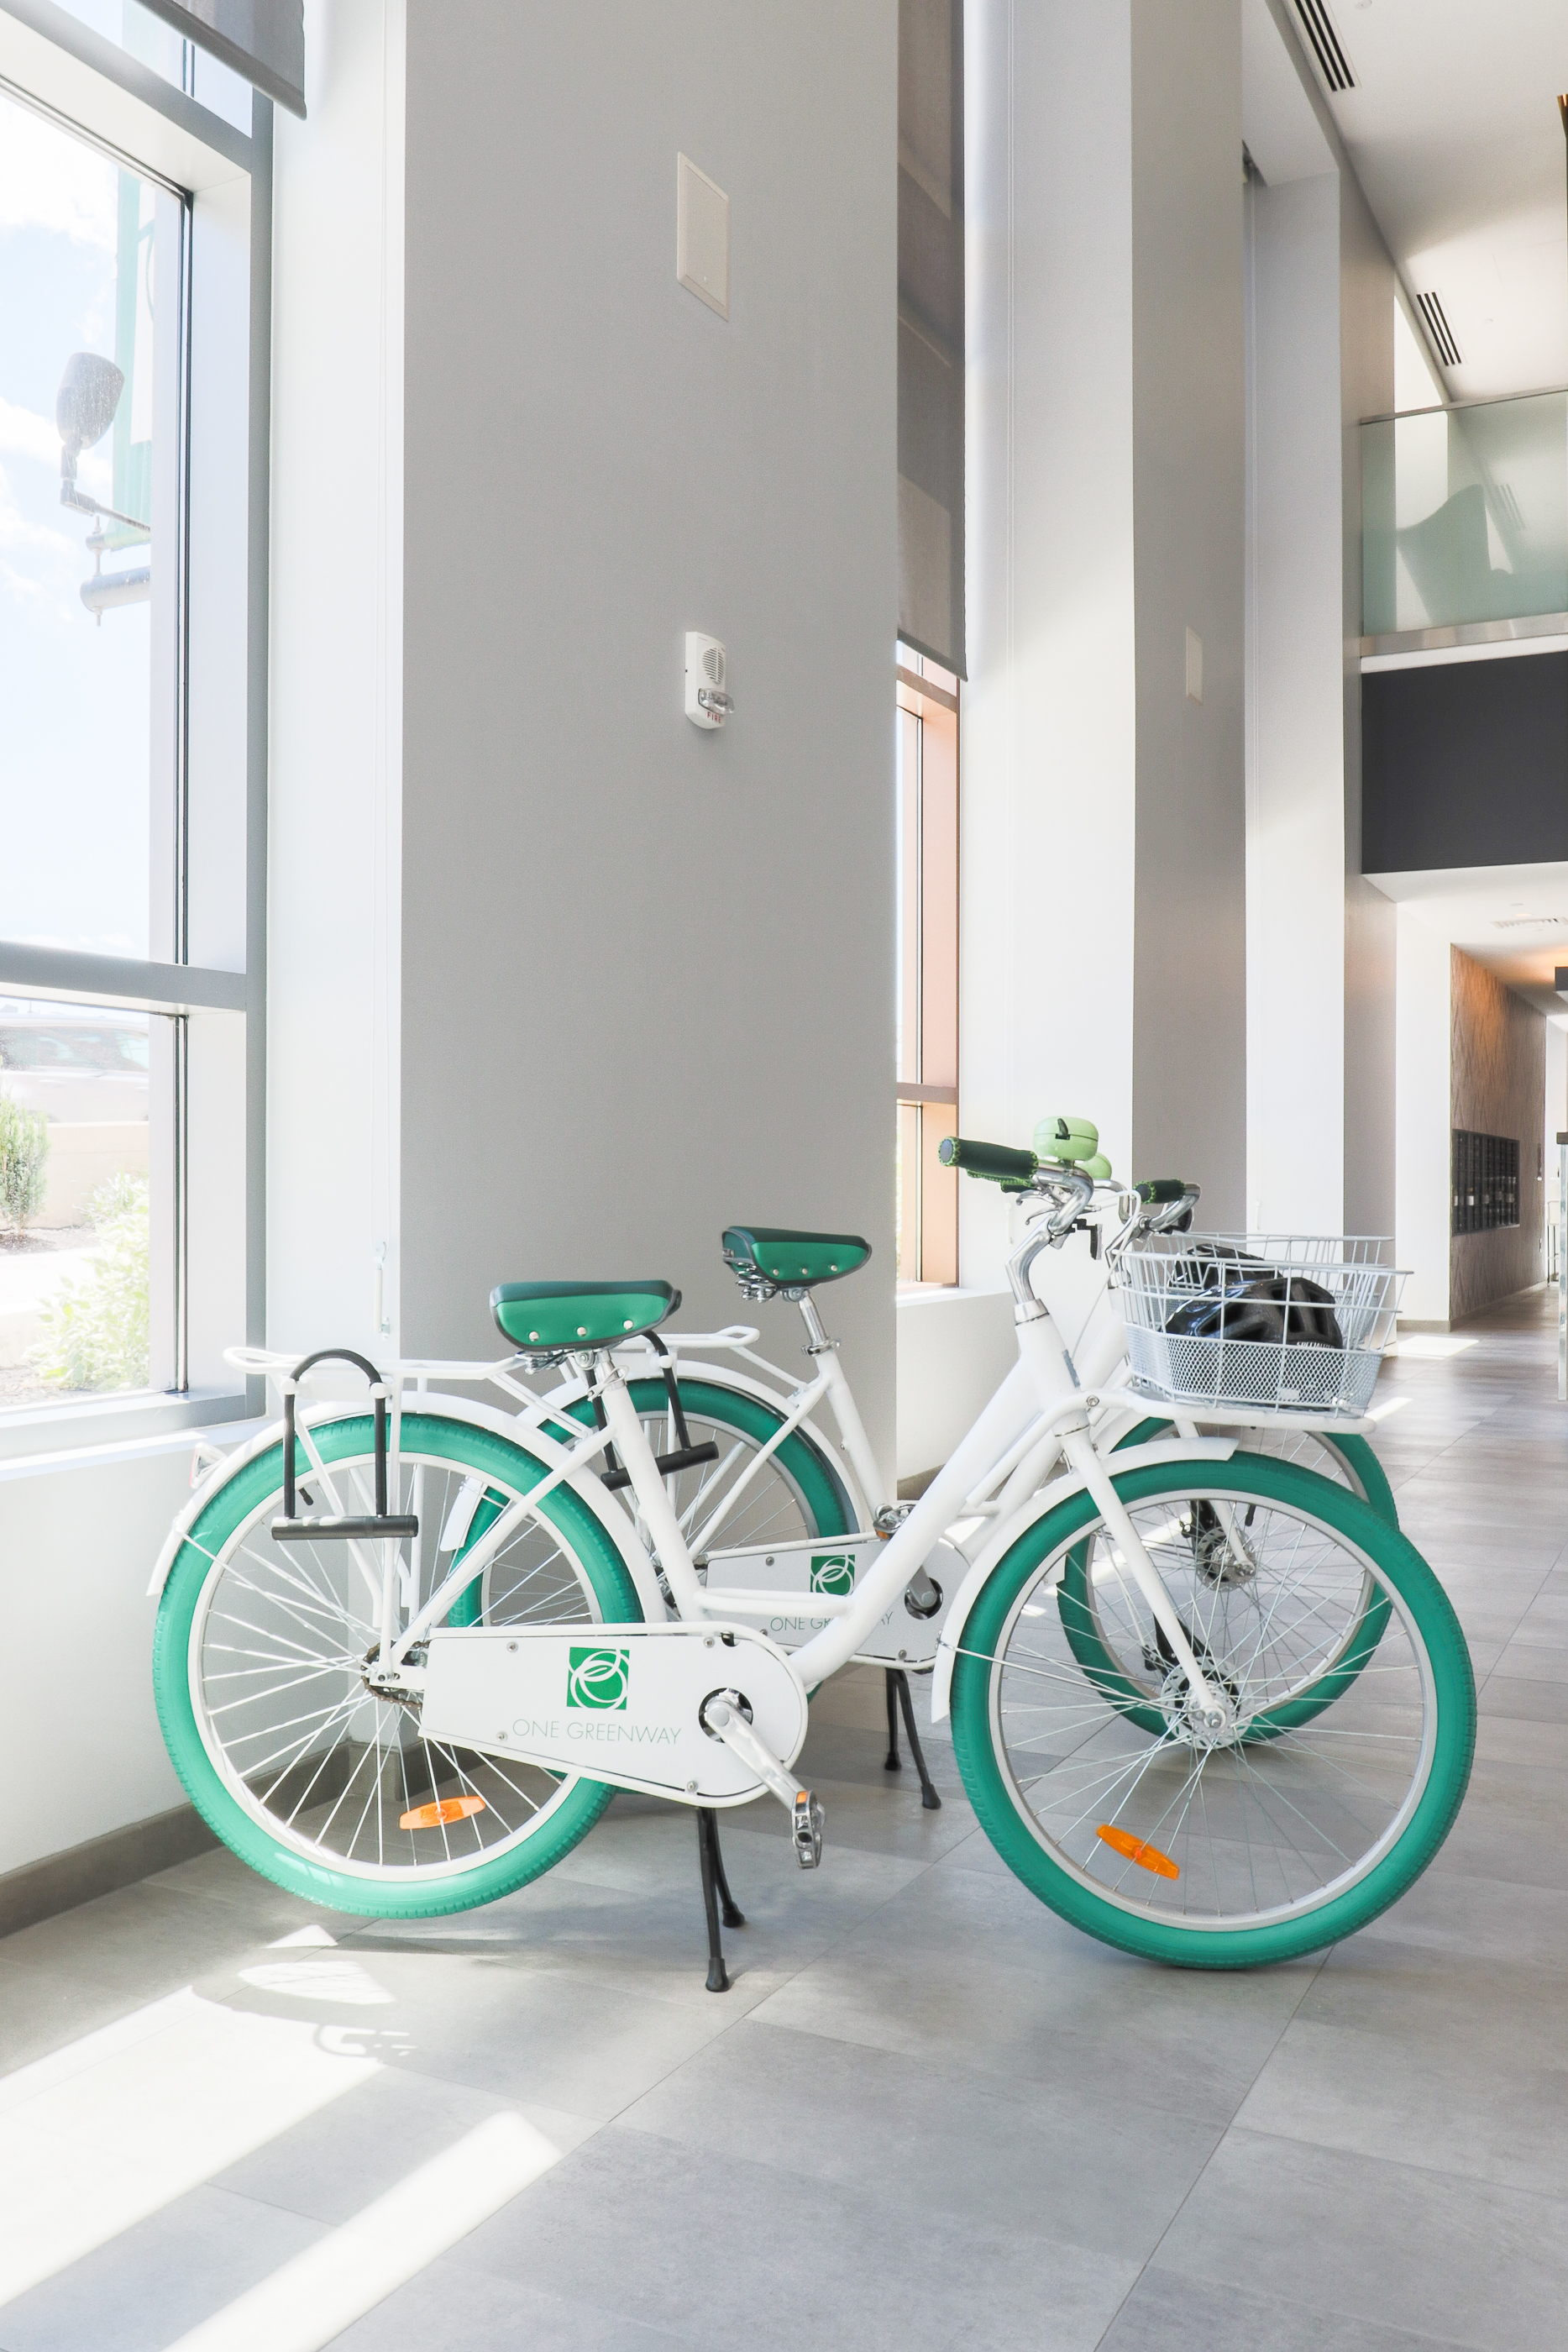 The amenities at these places are getting more and more creative. Free loaner bikes for residents at One Greenway